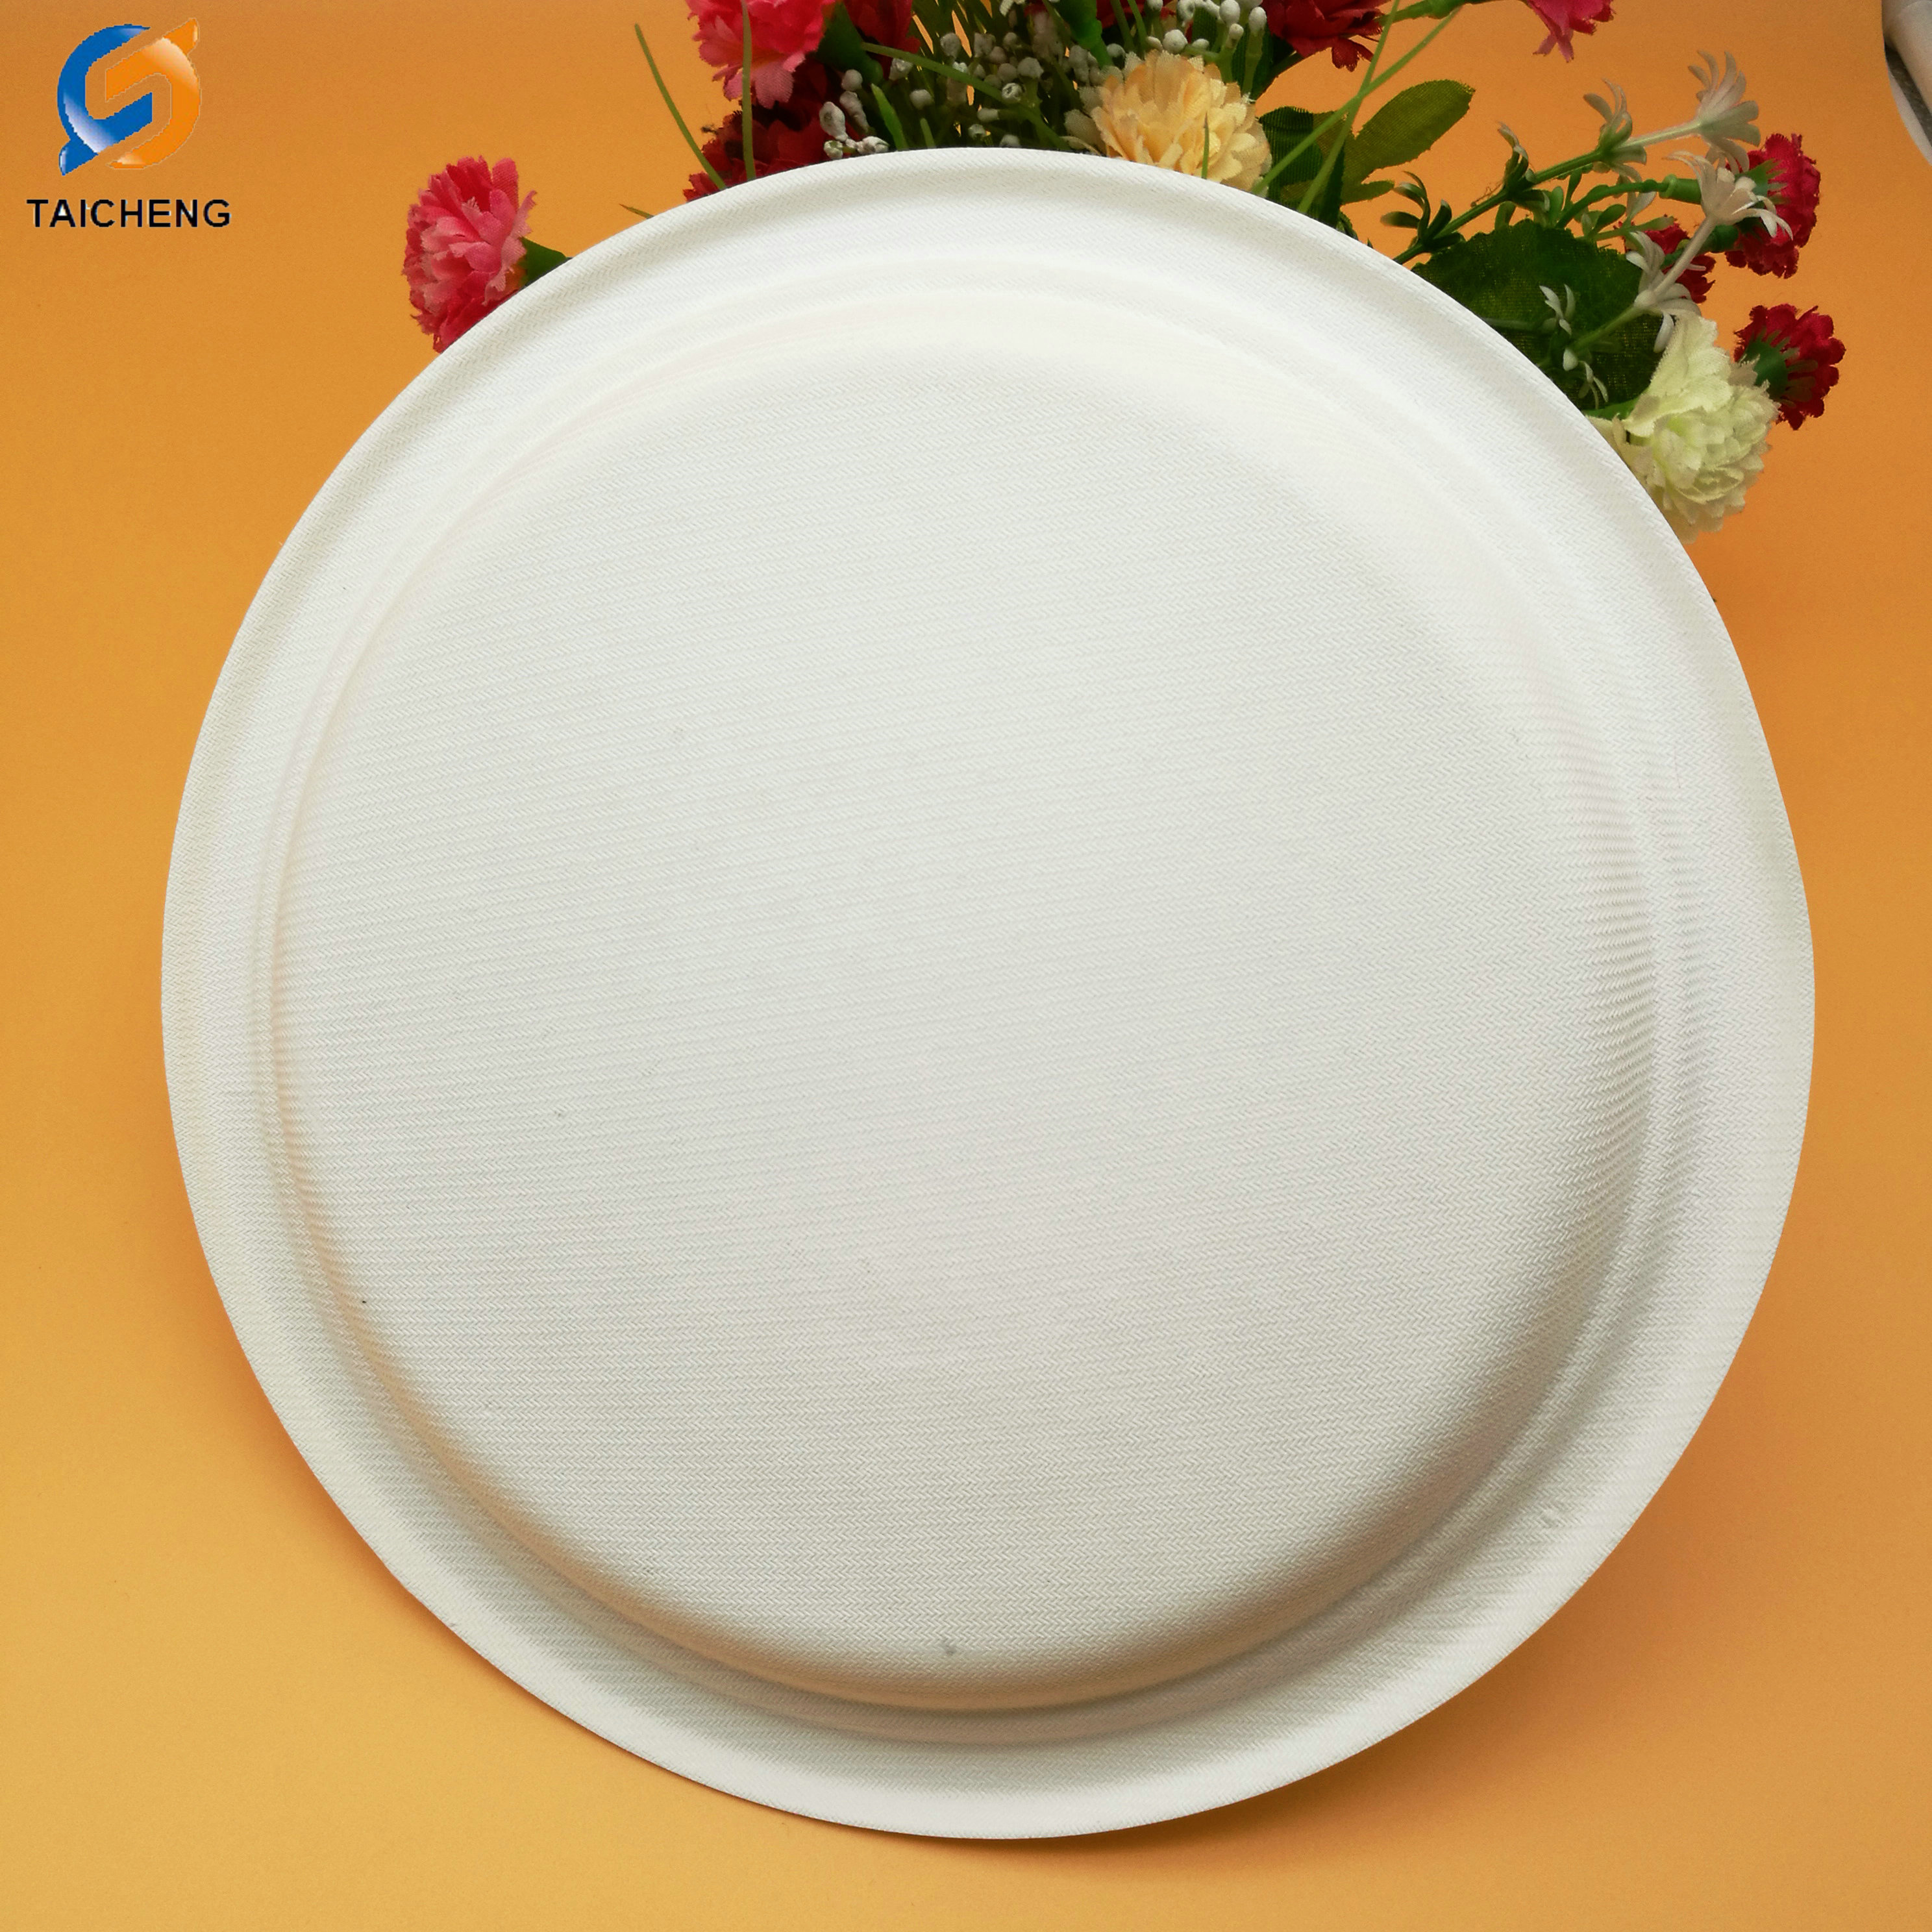 Biodegradable sugarcane pulp disposable plates & Biodegradable sugarcane pulp disposable plates biodegradable plate ...